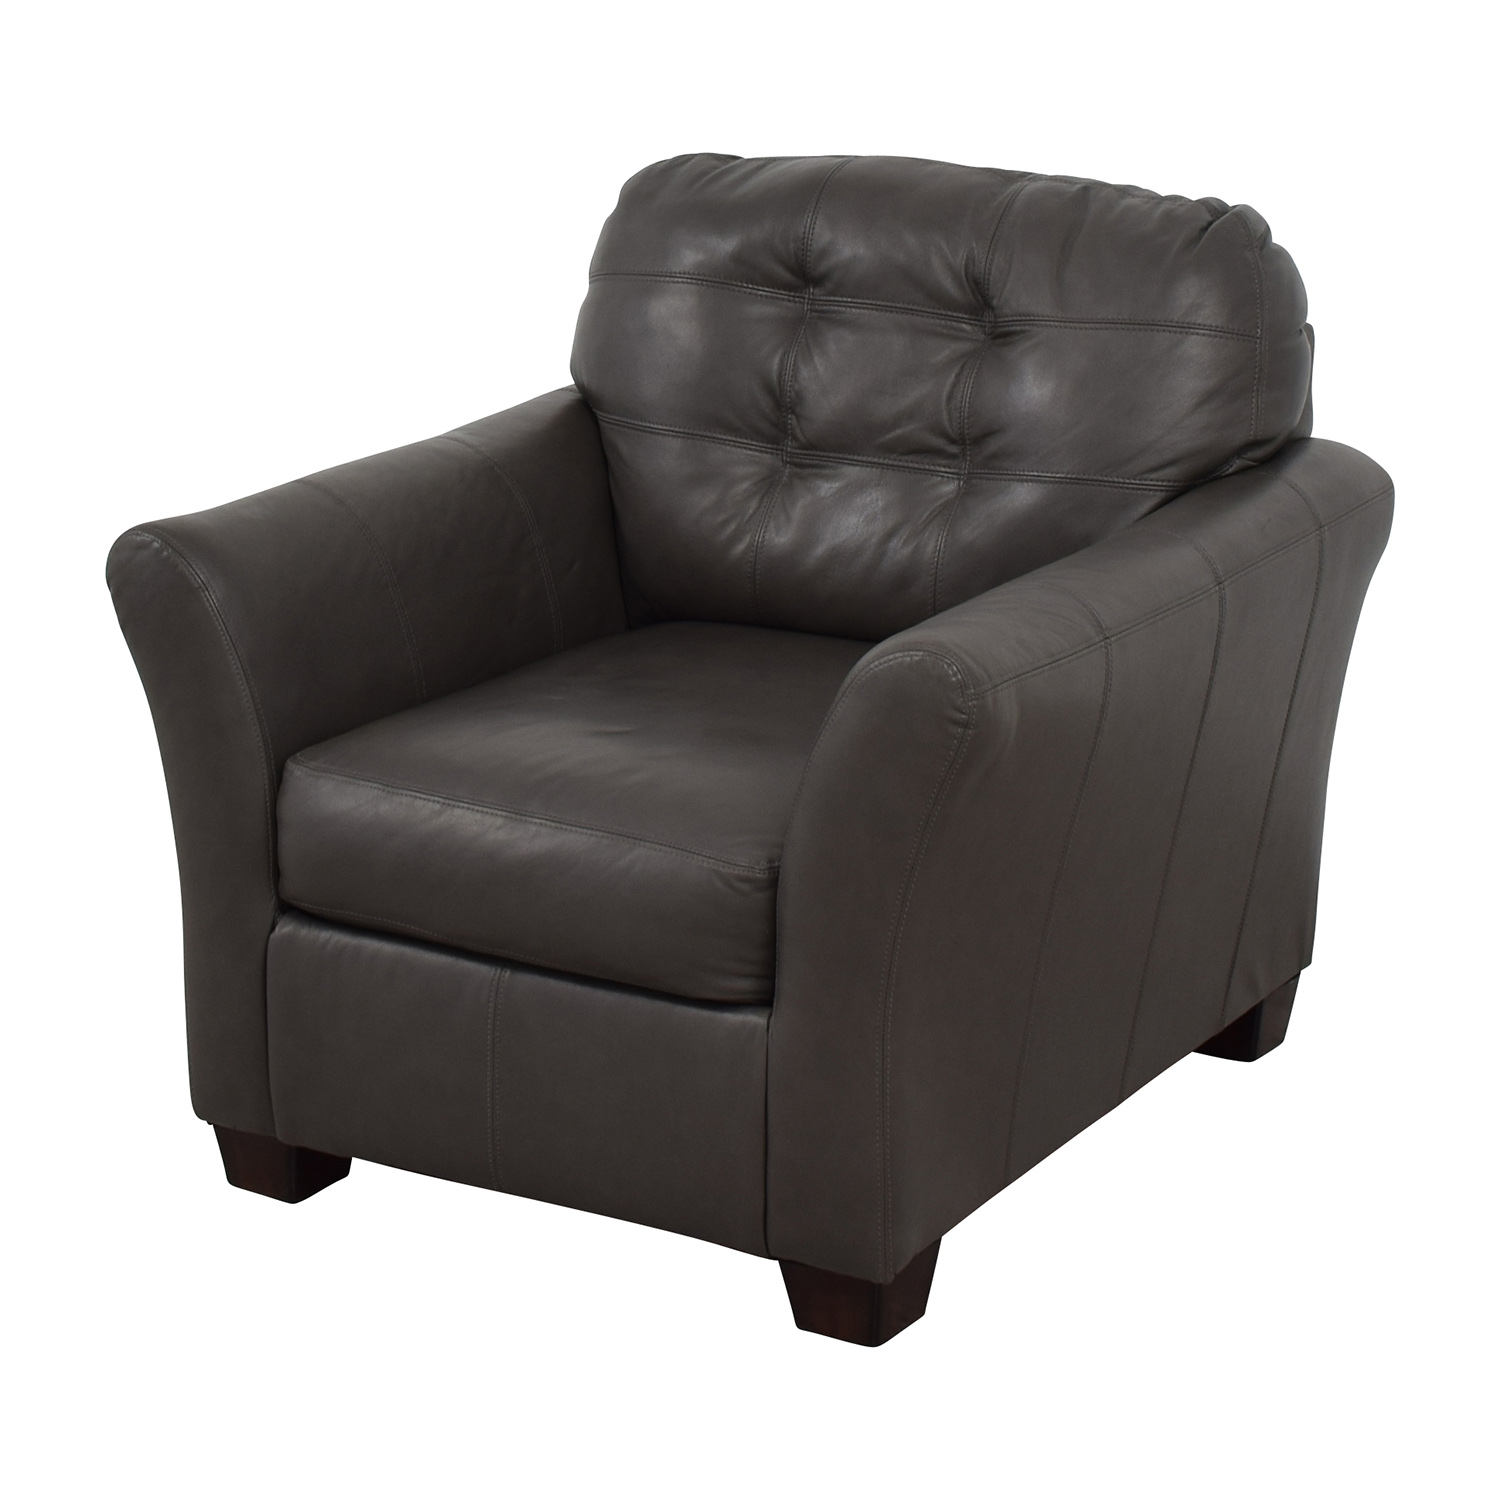 Ashley Furniture Gray Leather Chair sale